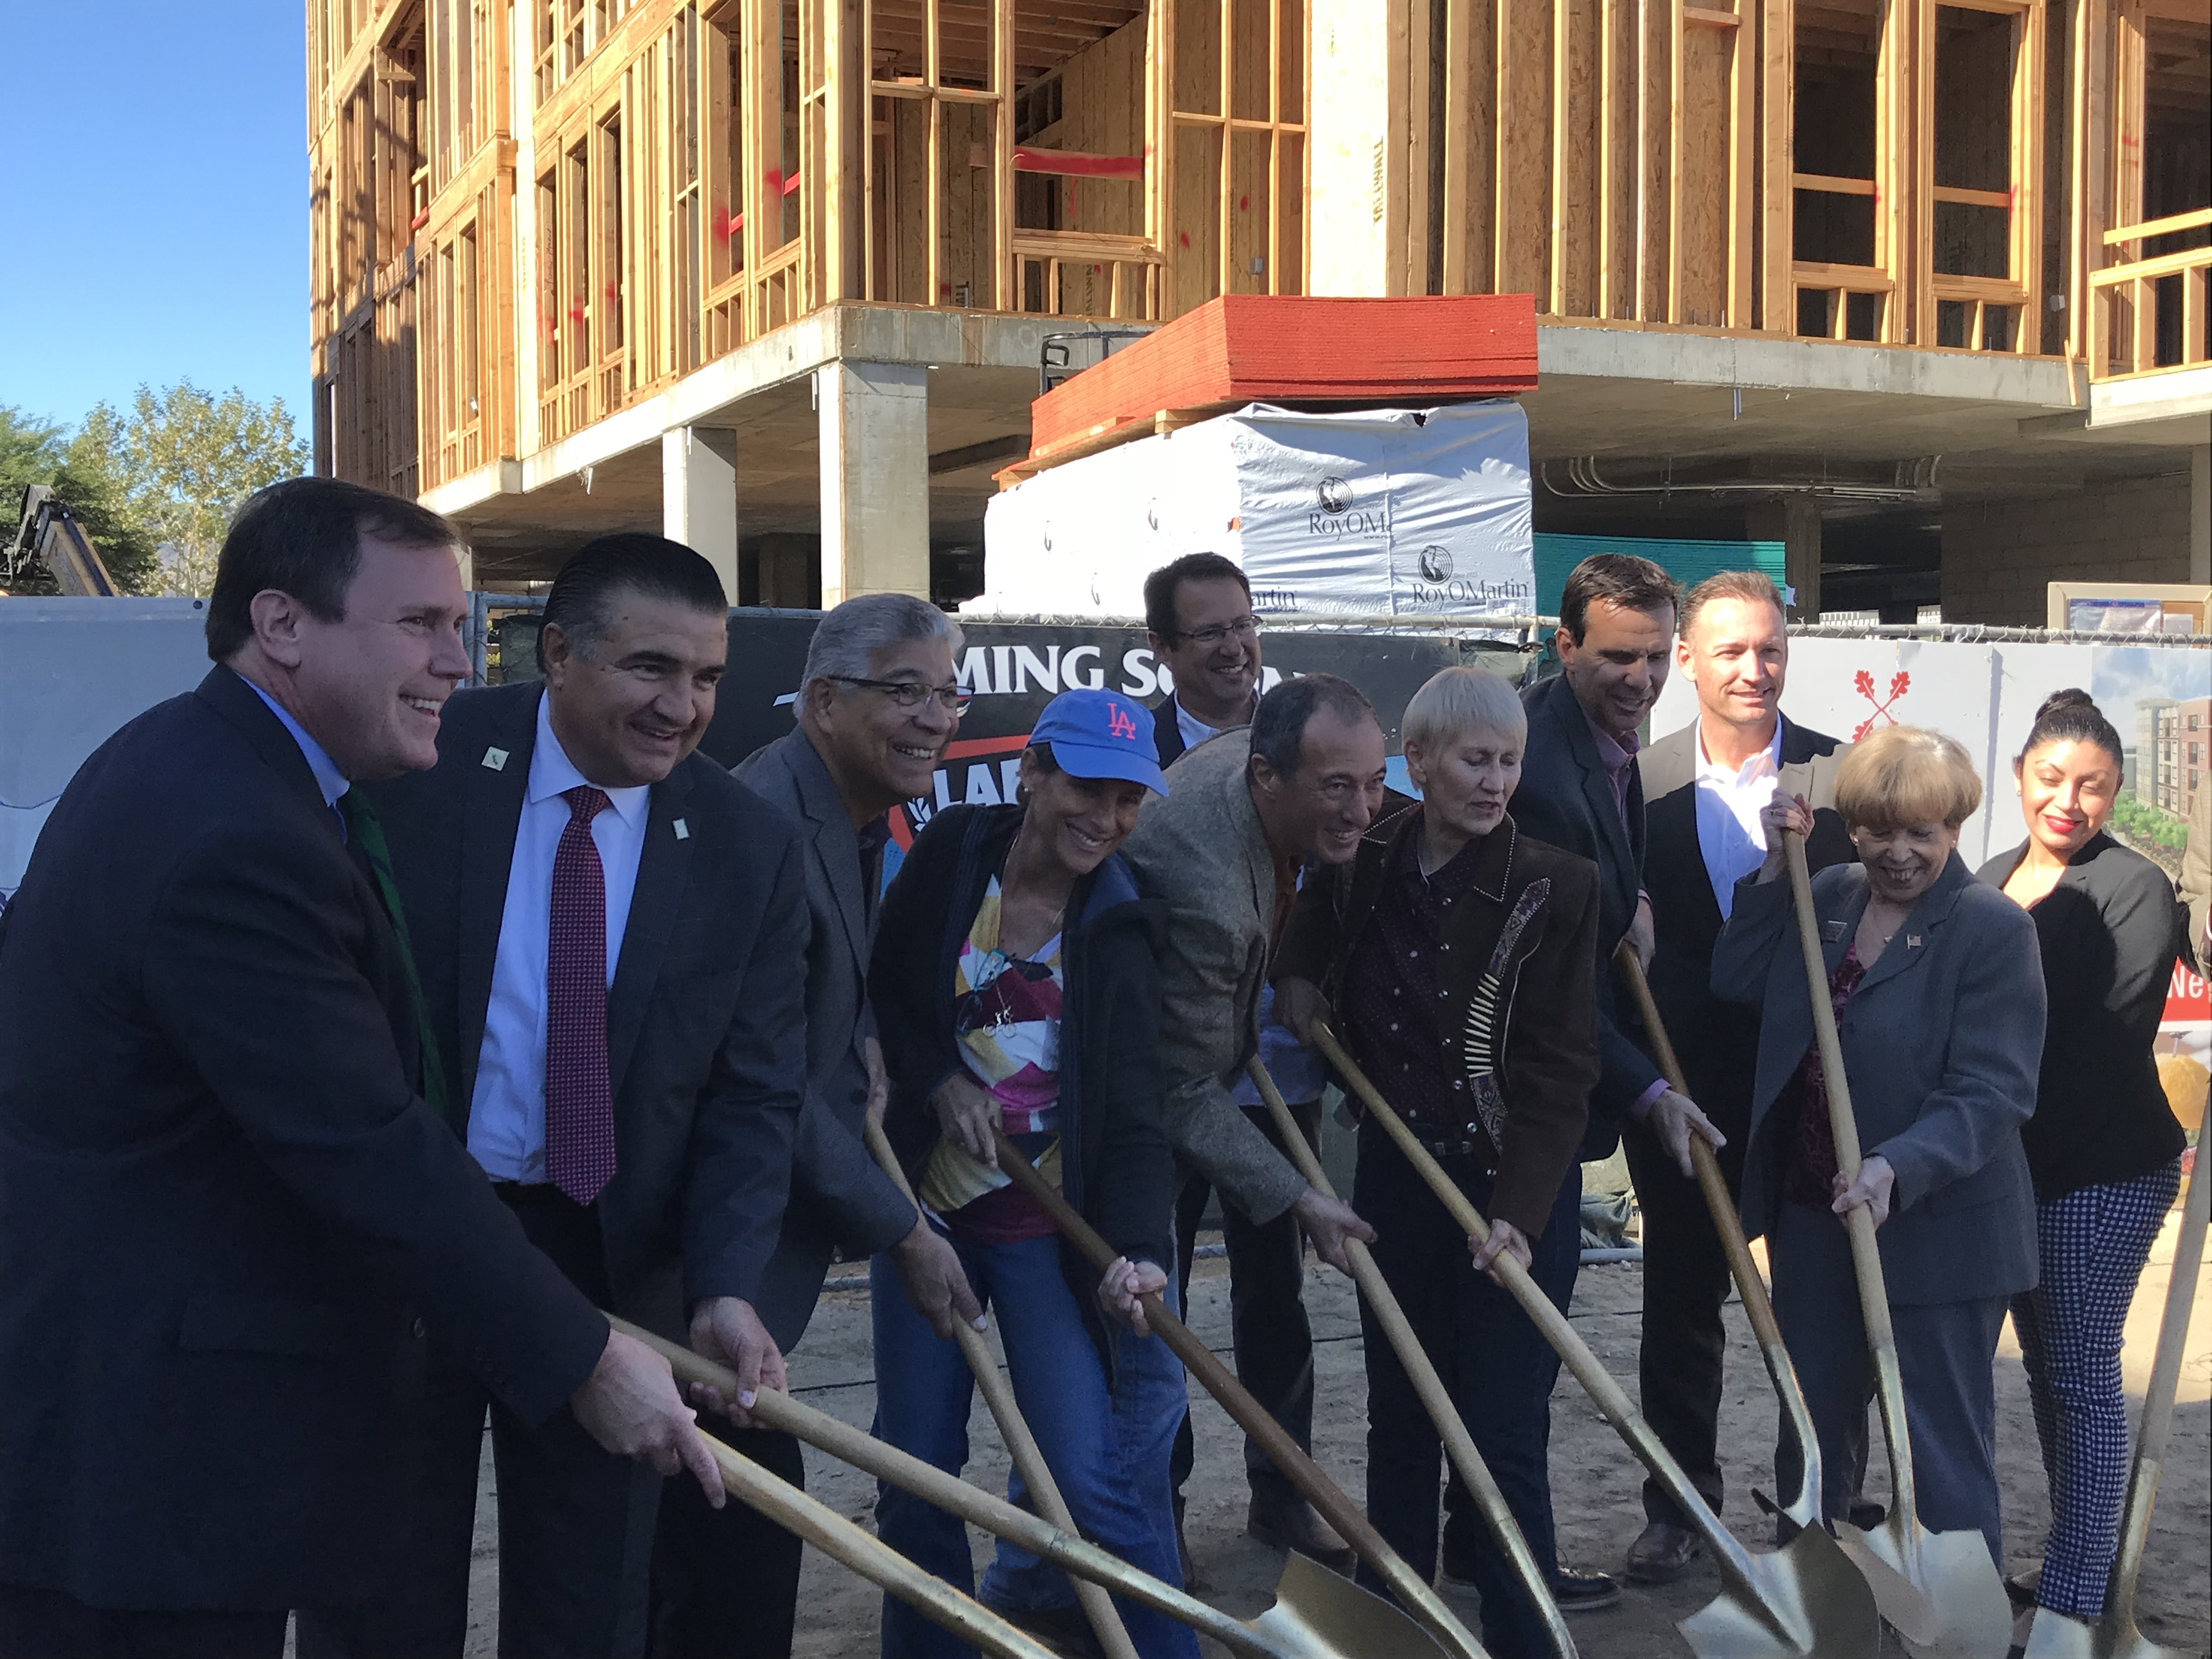 Groundbreaking for a new Laemmle Theater in Newhall